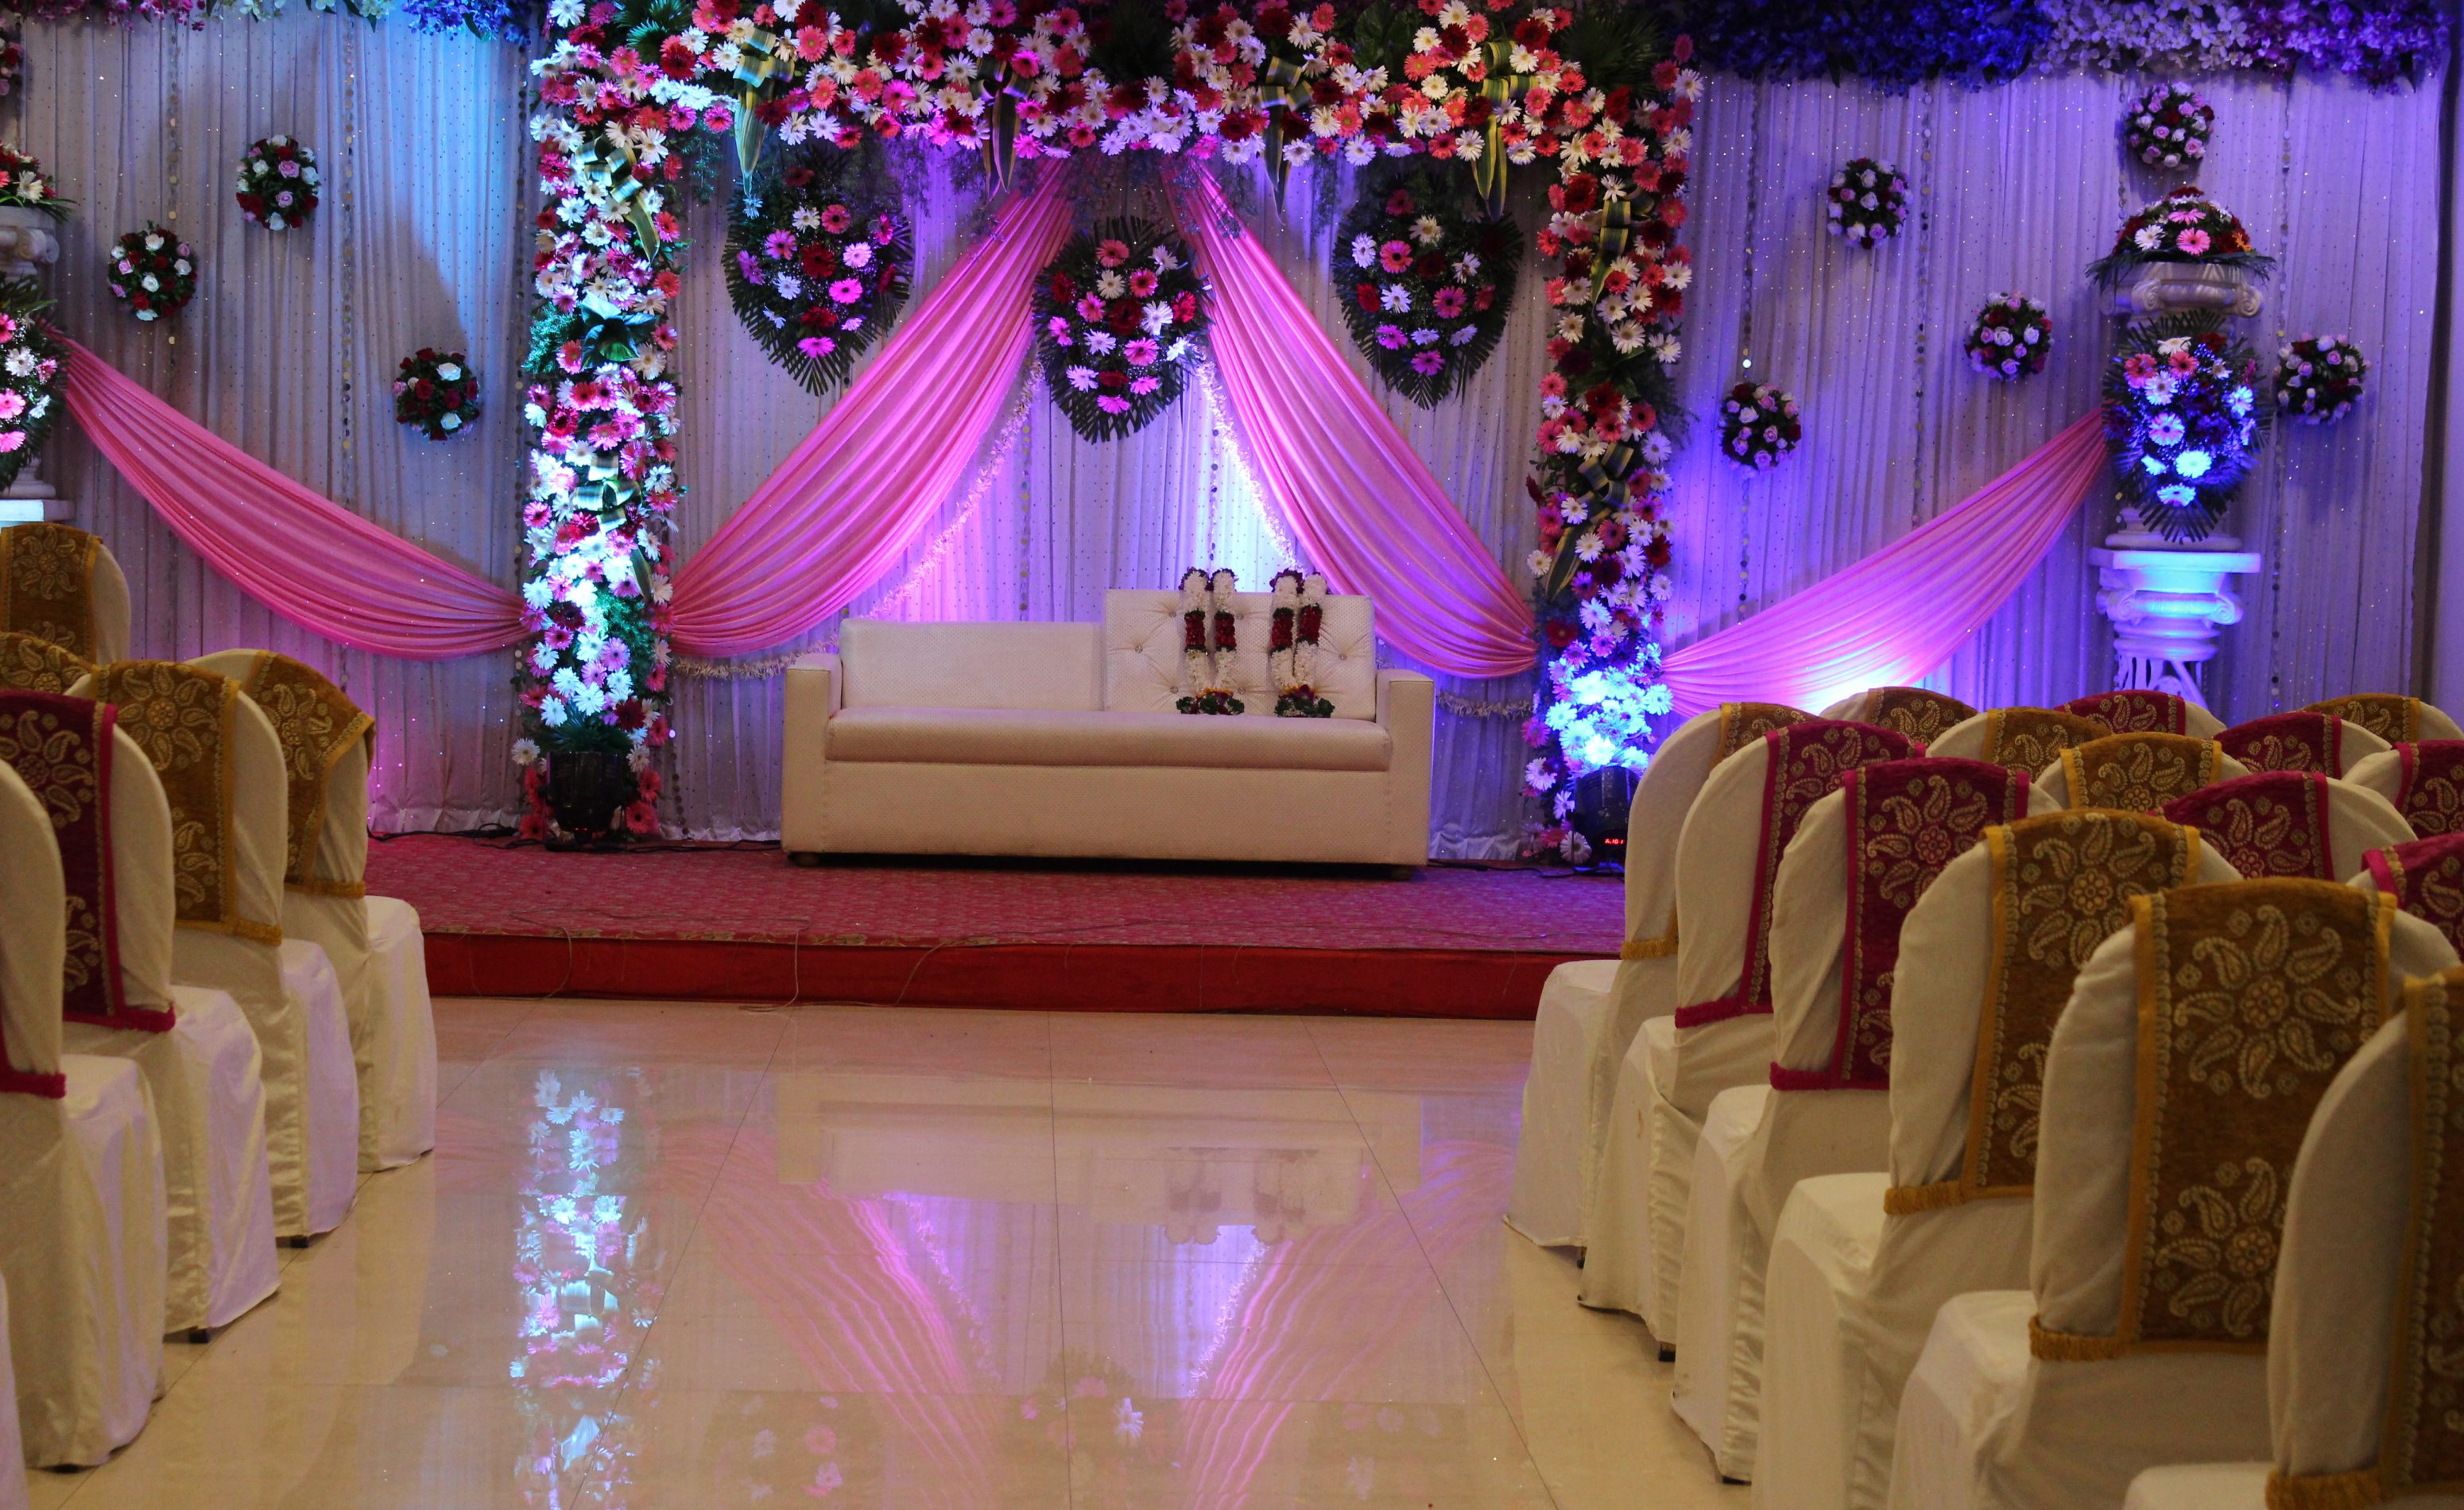 Wedding decor at White Lily Banquet hall